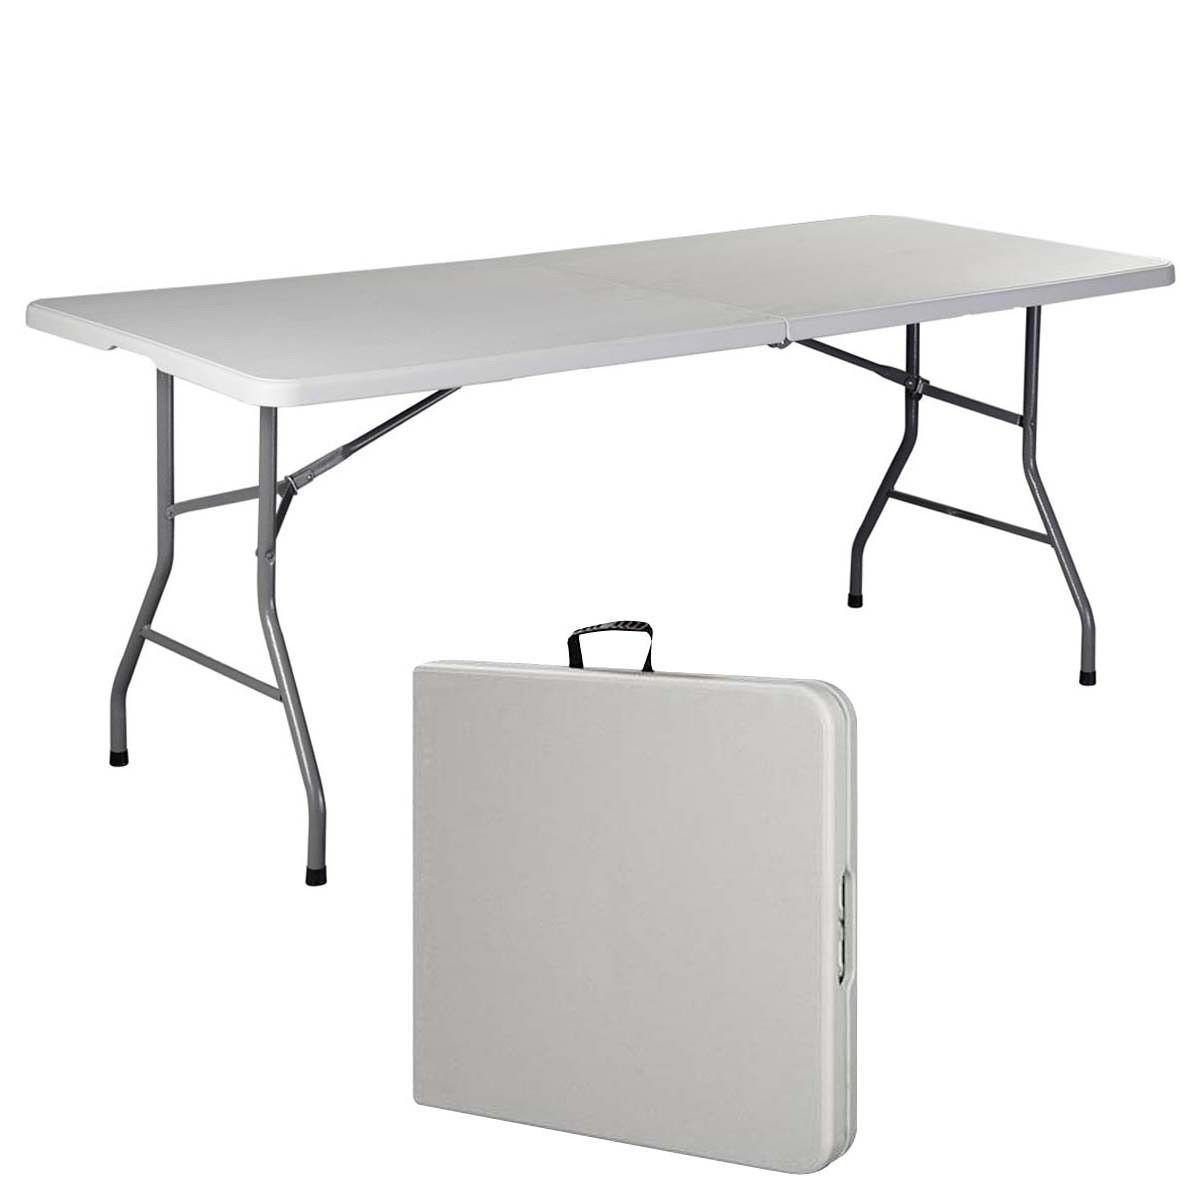 6 Folding Table Portable Plastic Indoor Outdoor Picnic Party Dining Camp Tables White